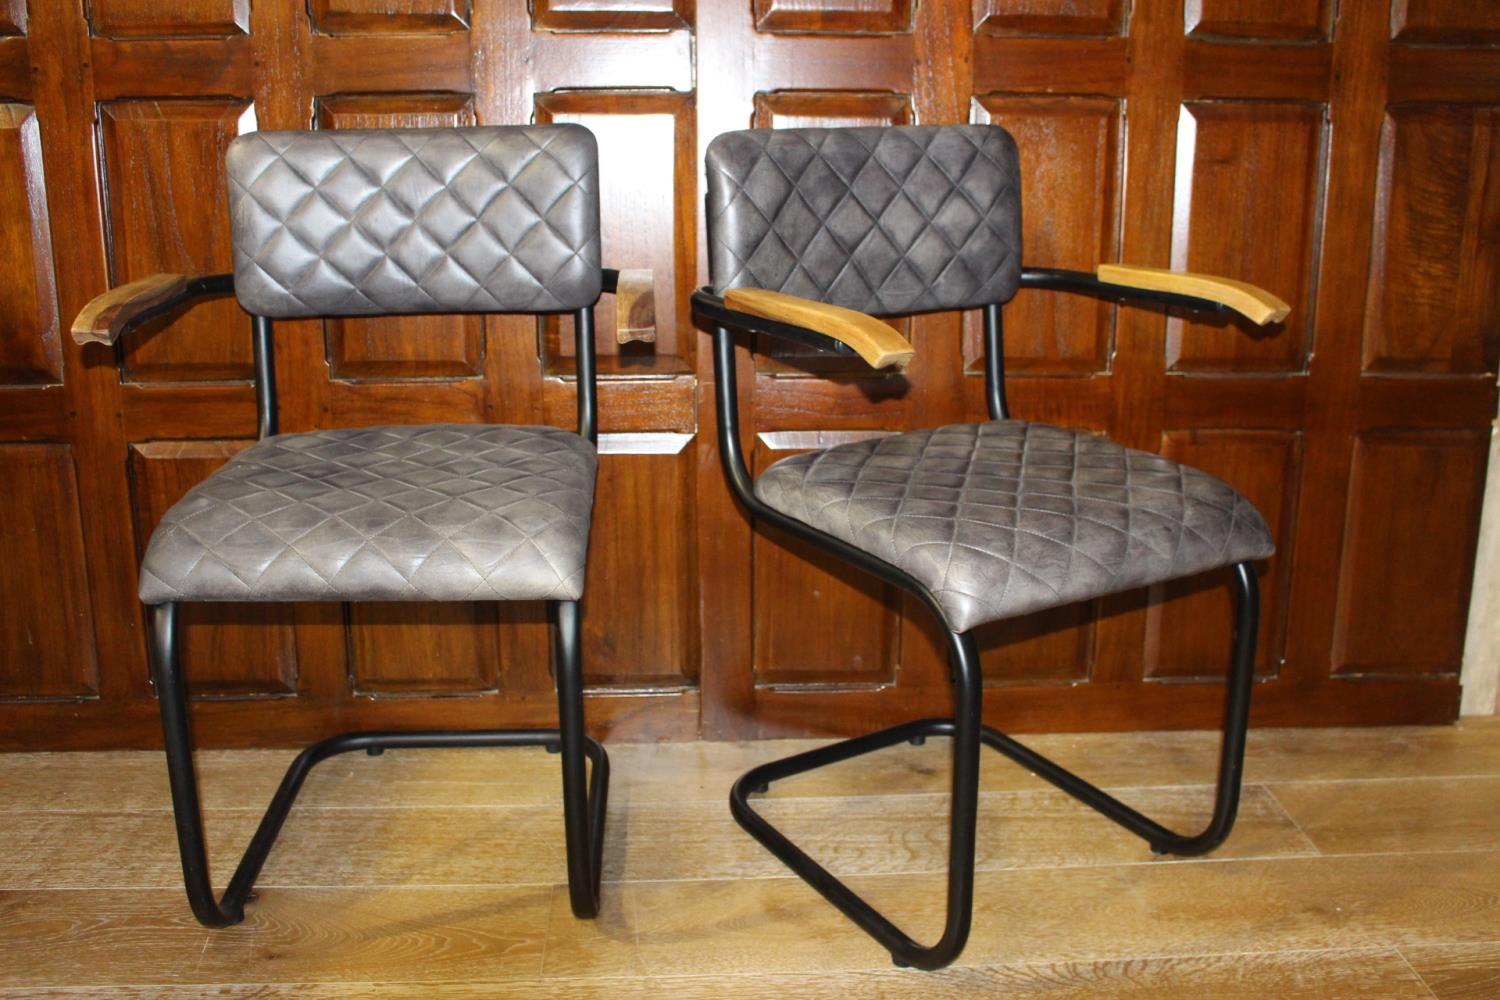 Pair of leather upholstered metal and wood armchairs.